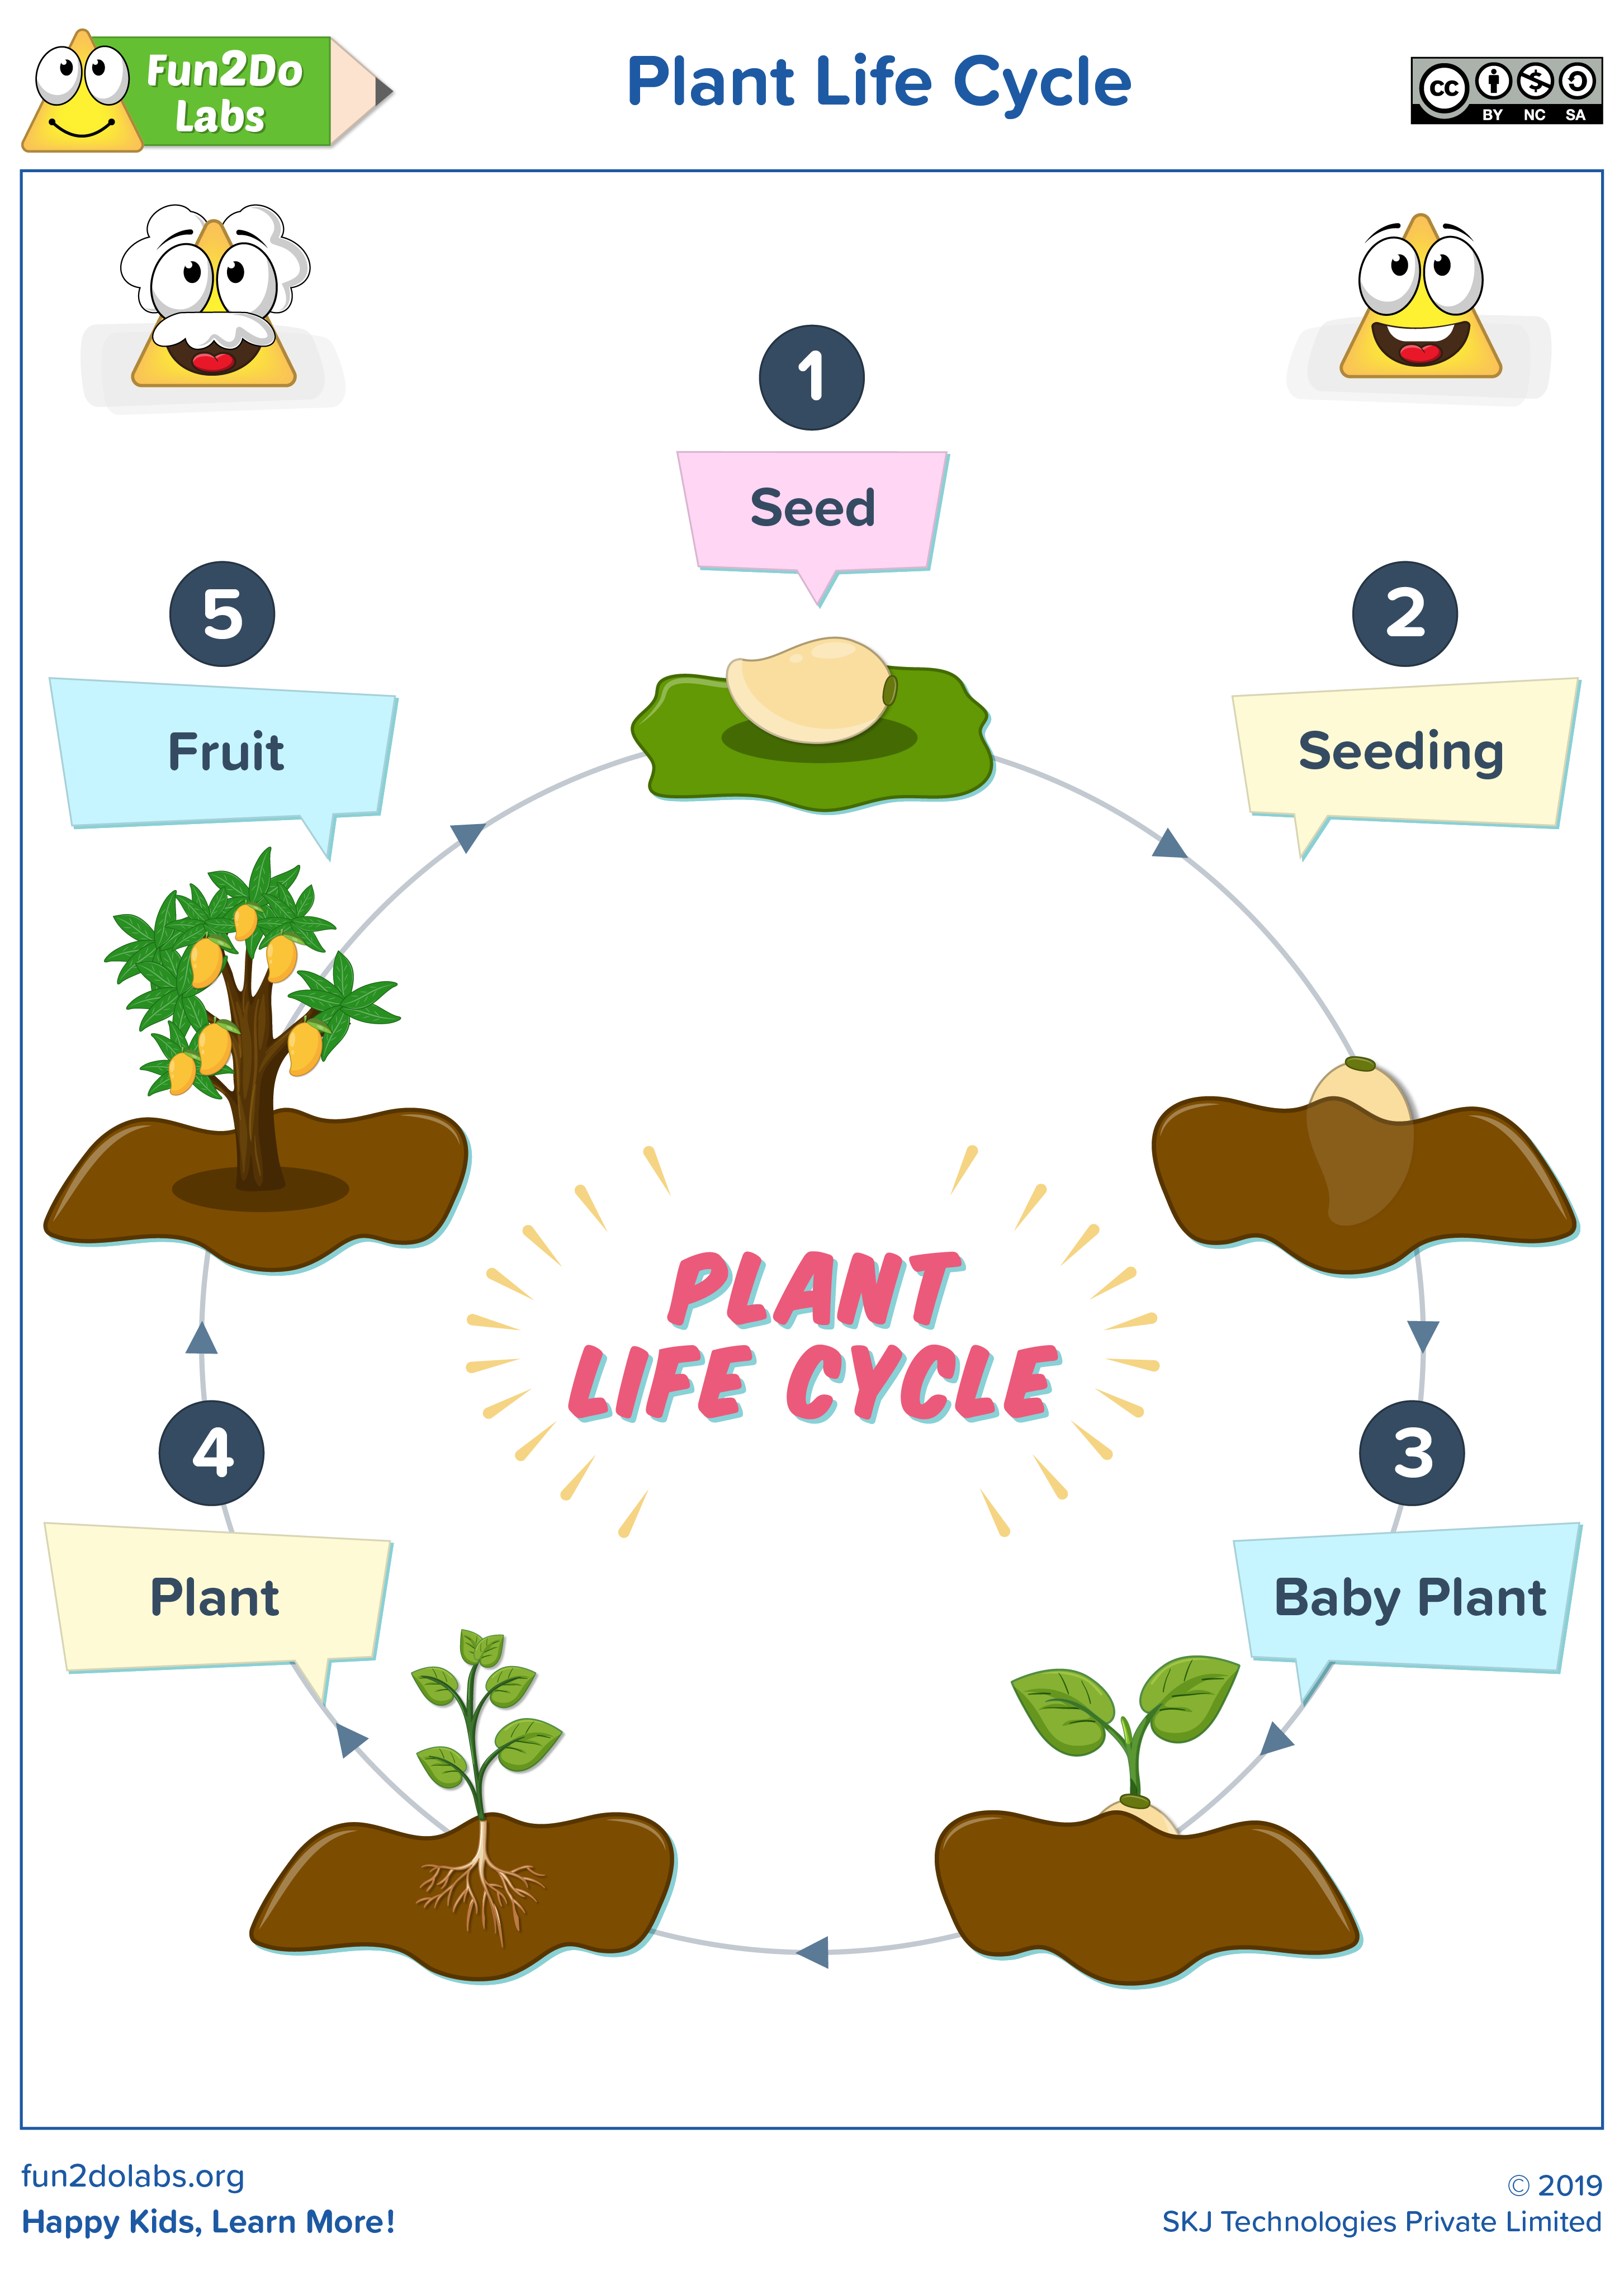 Plant Life Cycle   Plant life cycle [ 4062 x 2905 Pixel ]